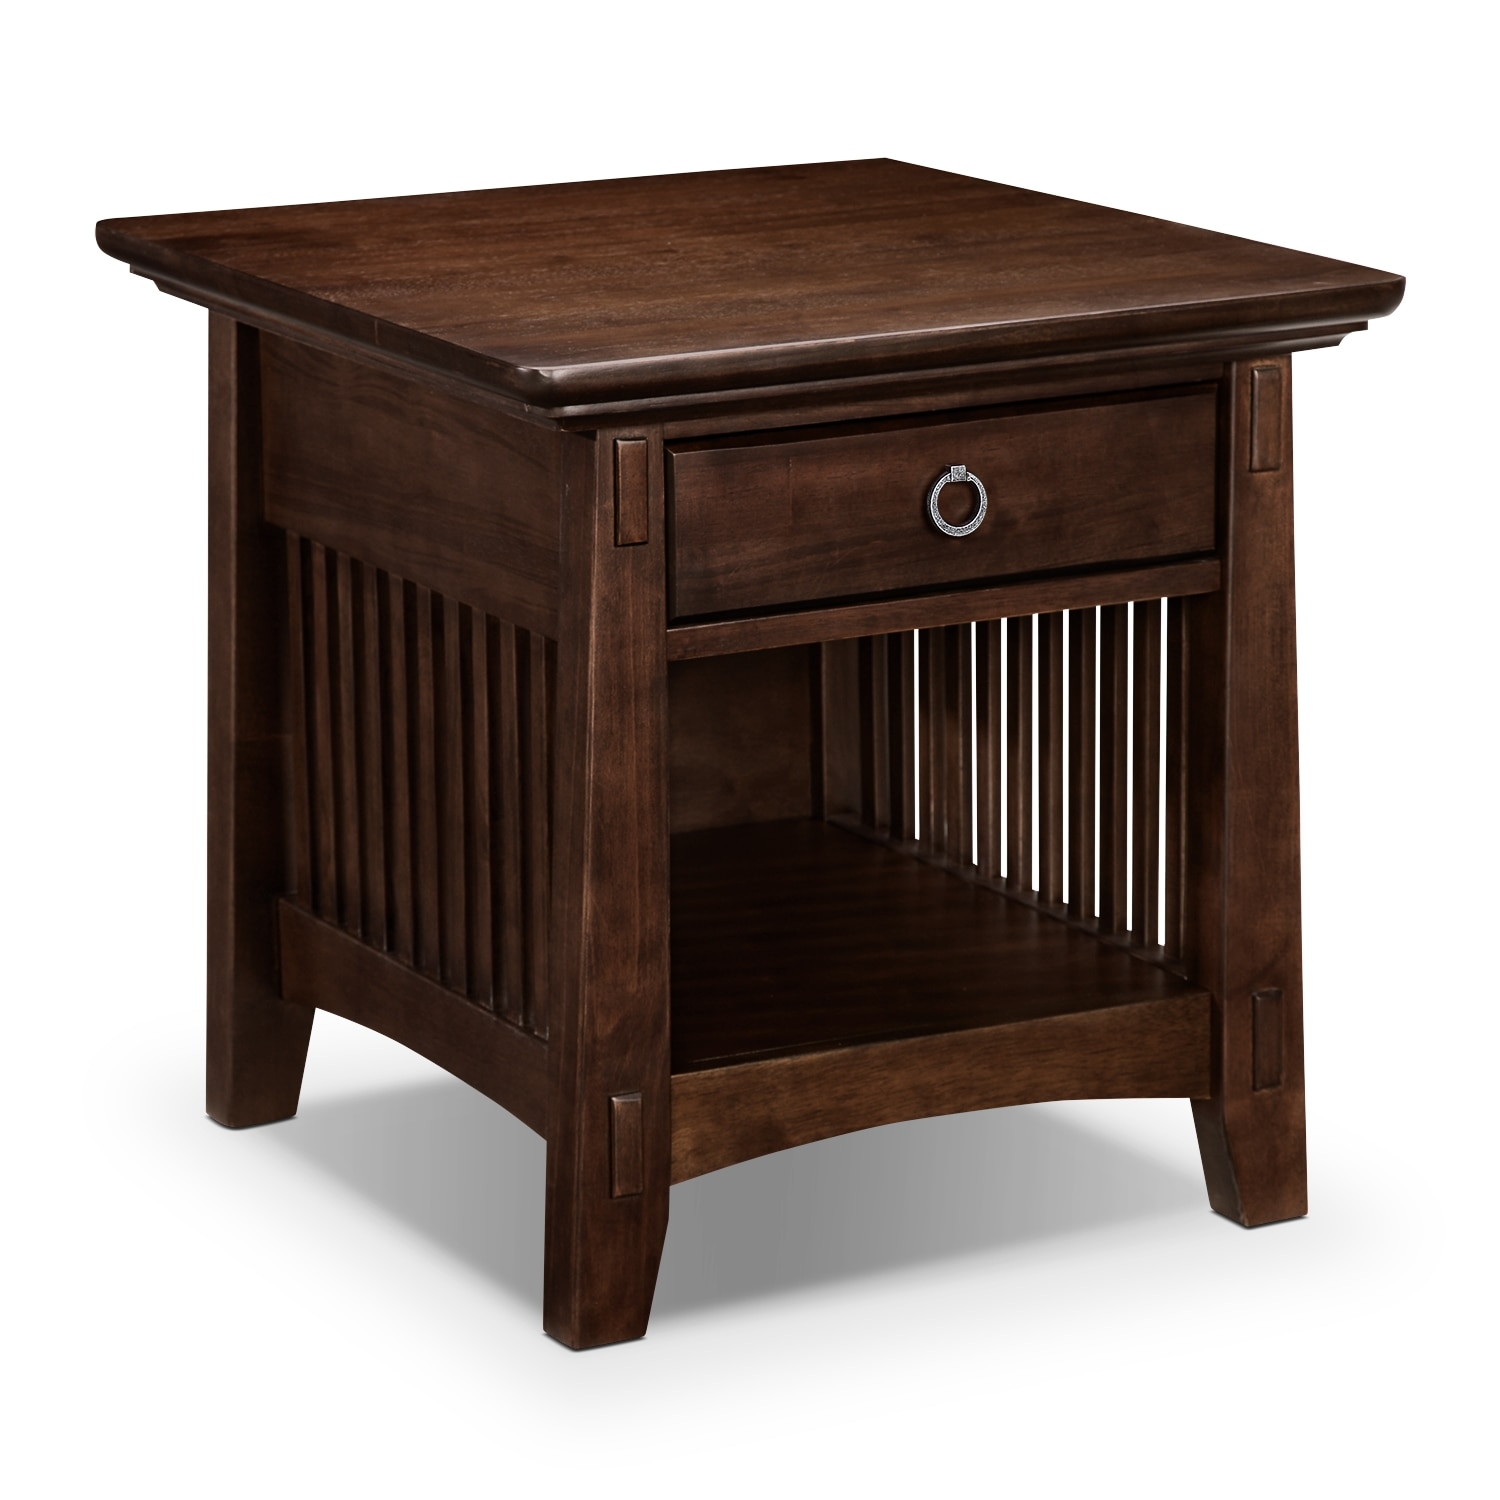 Arts and crafts furniture -  279 99 Arts Crafts End Table Chocolate